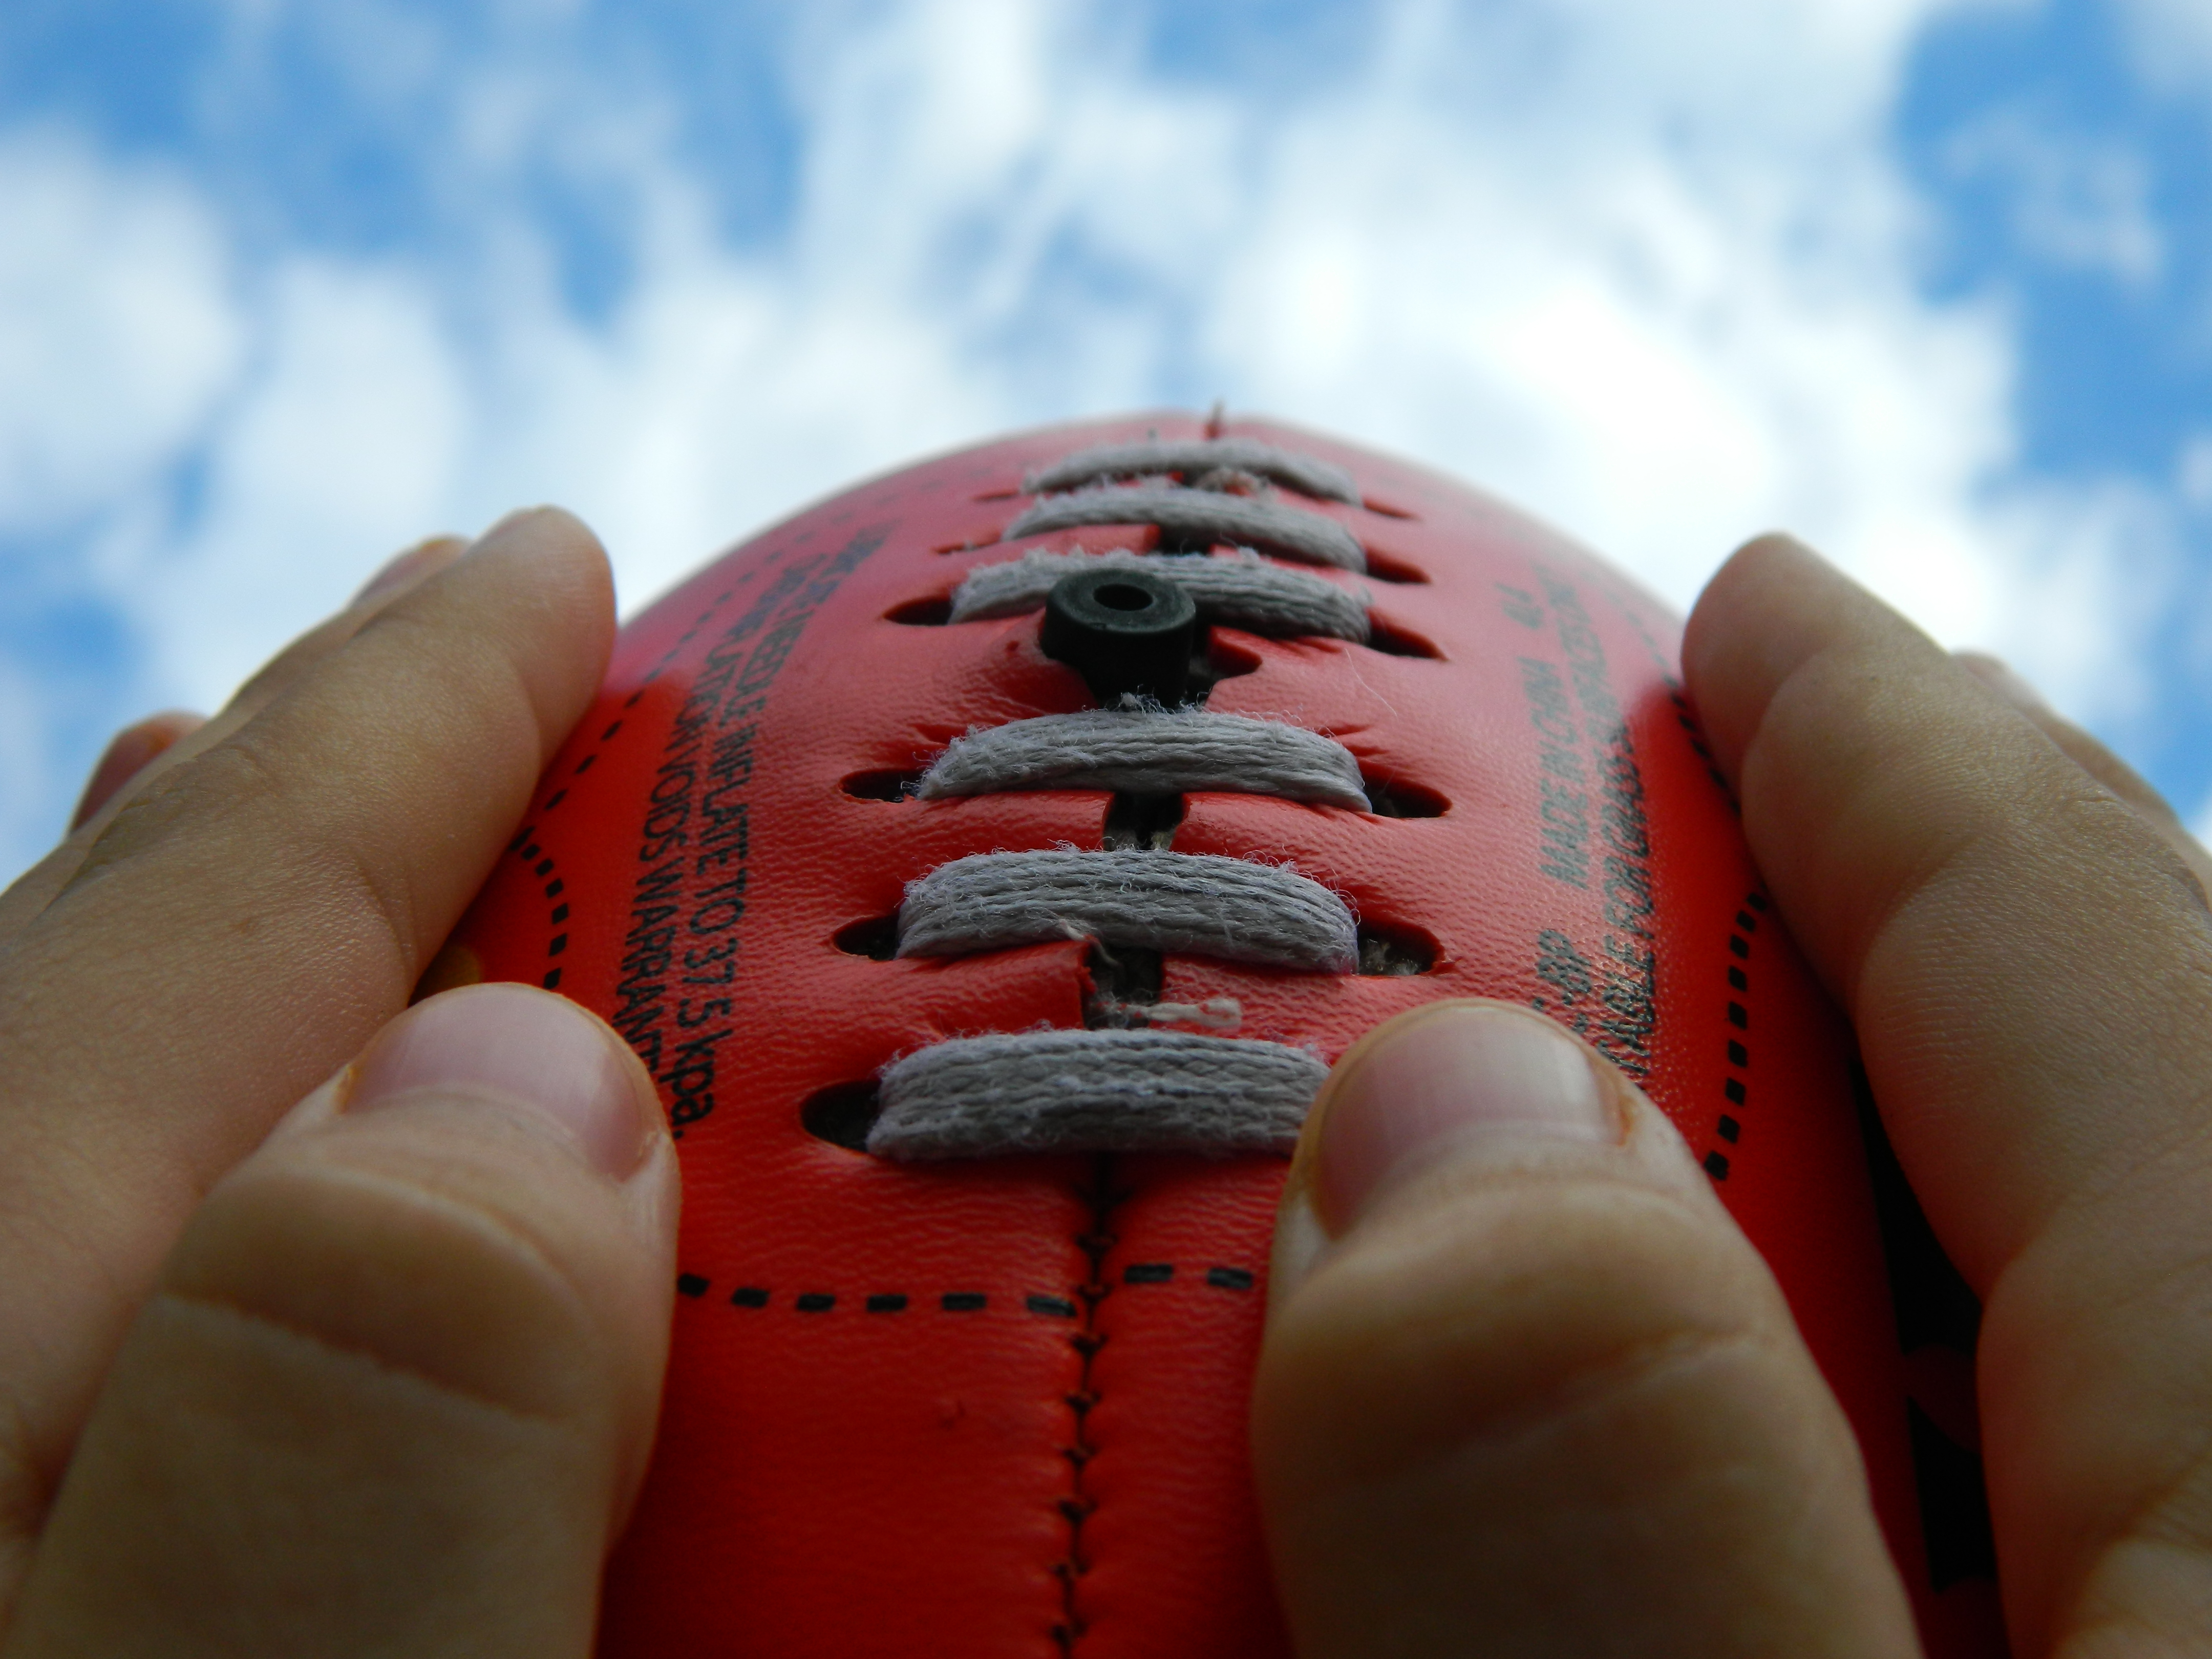 Hands holding football on sky background